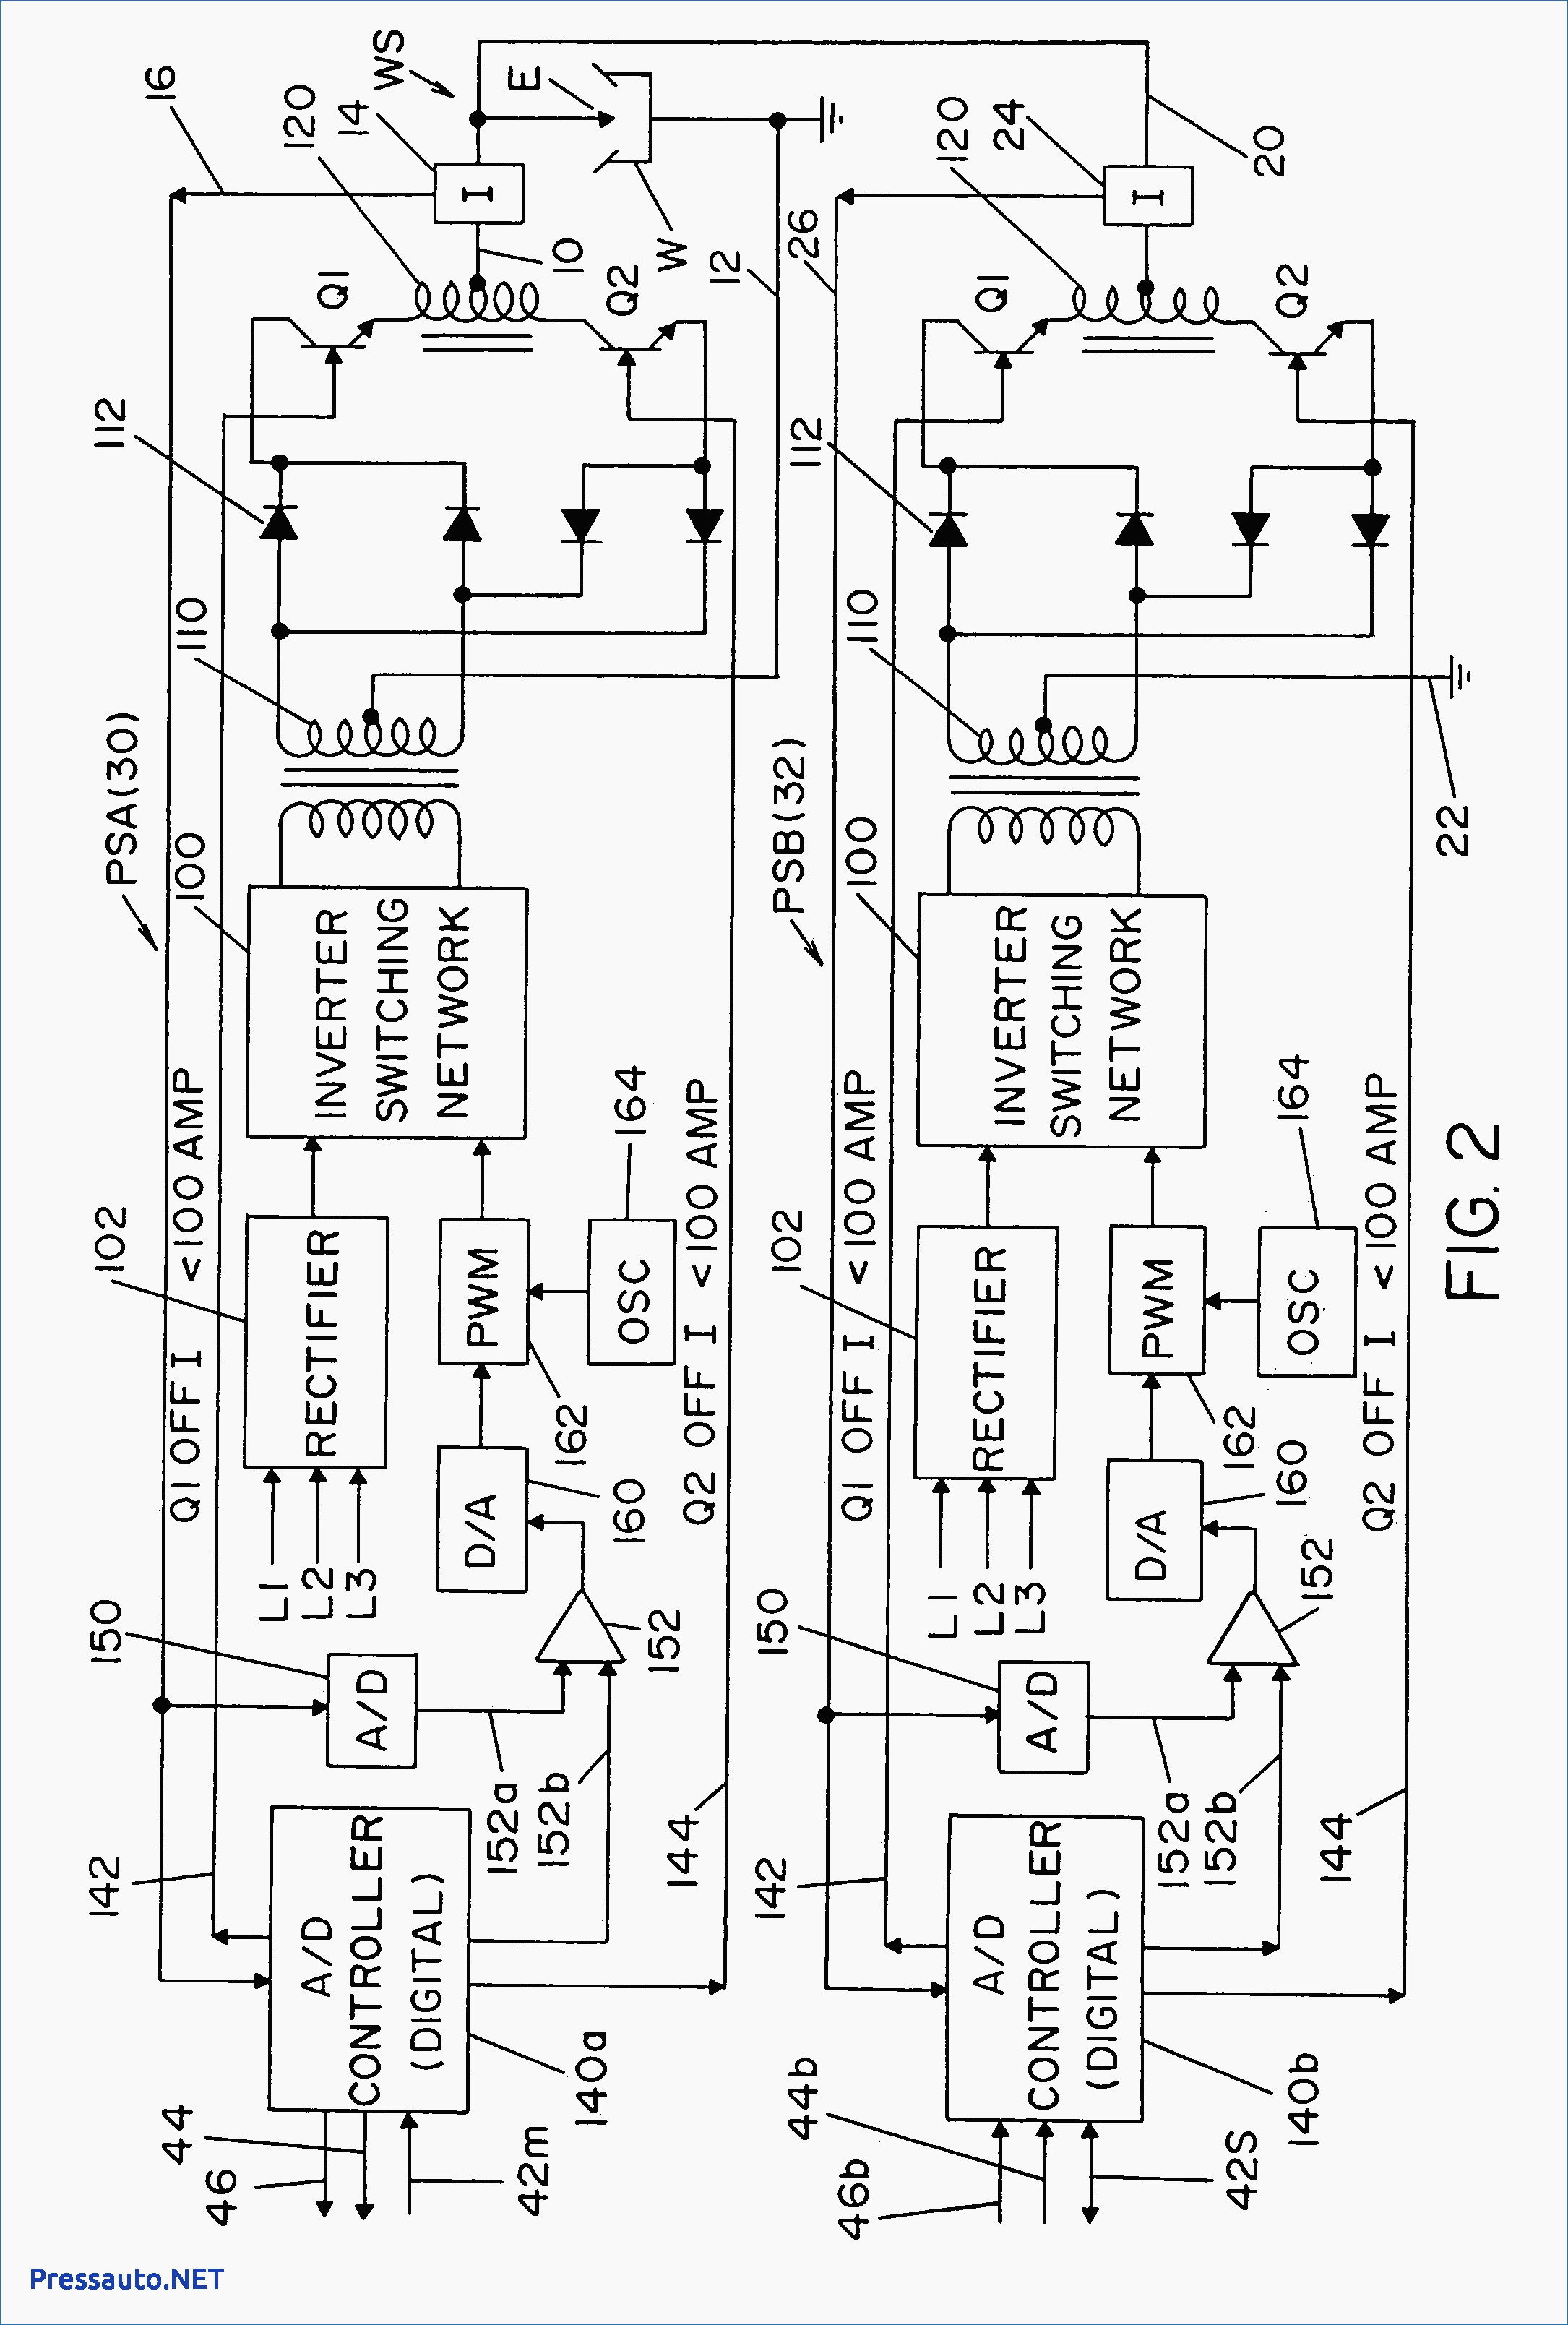 Wiring Diagram For Lincoln 225 Welder